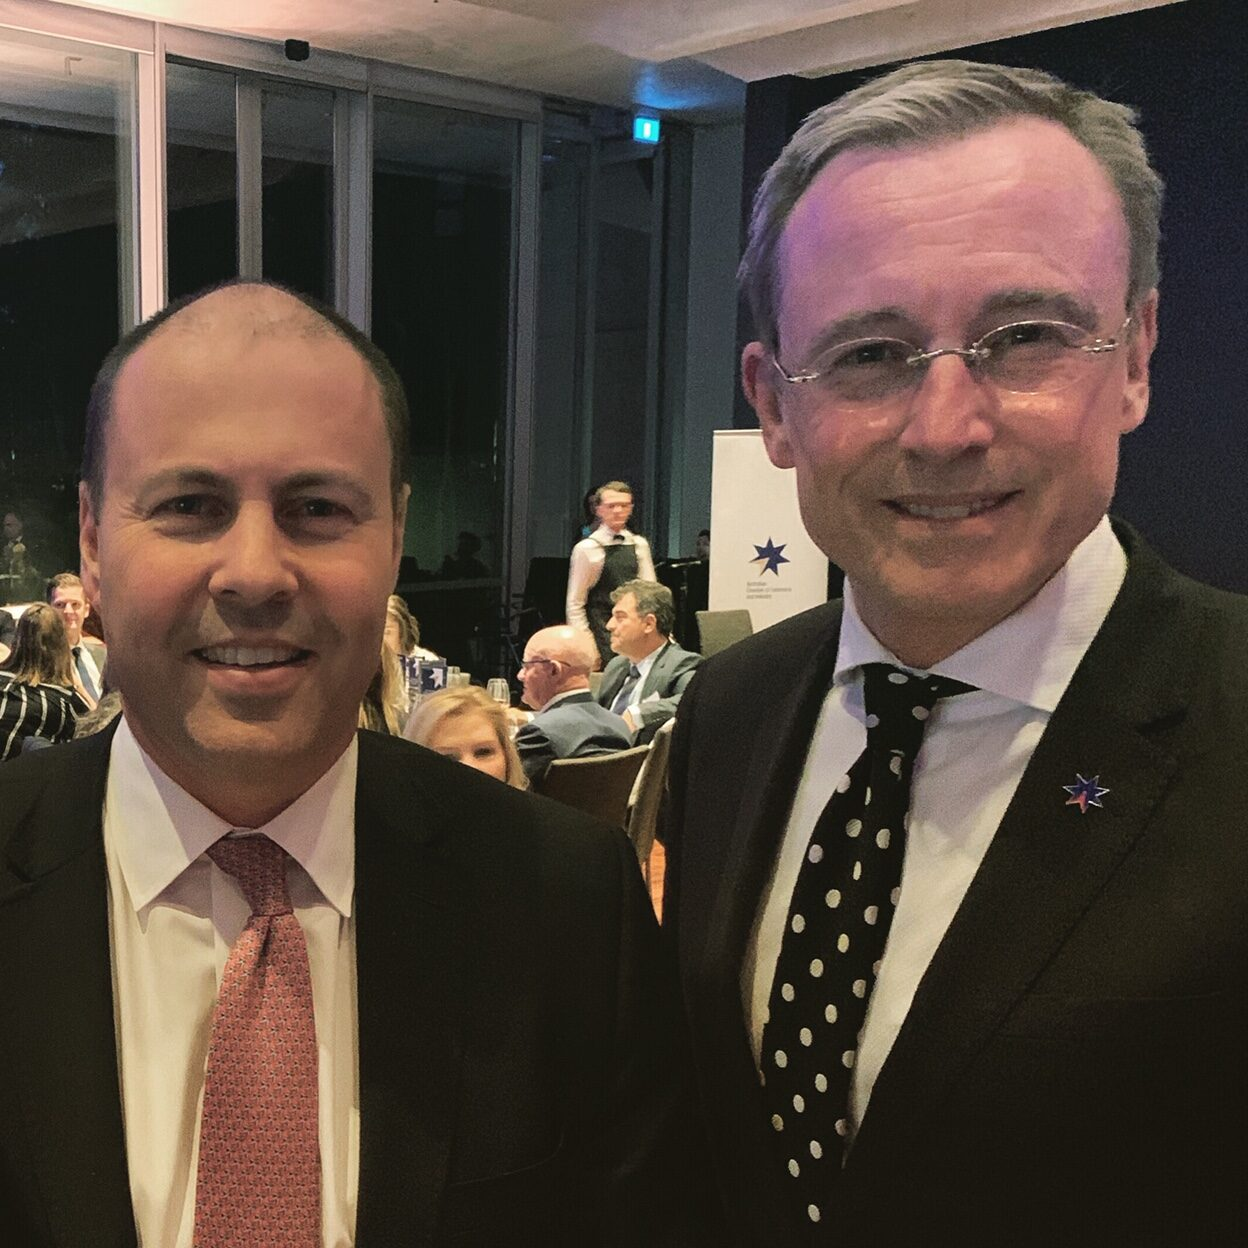 Honourable Josh Frydenberg MP, Treasurer of Australia and Martin Haese, CEO of Business SA, Chamber of Commerce and Industry South Australia